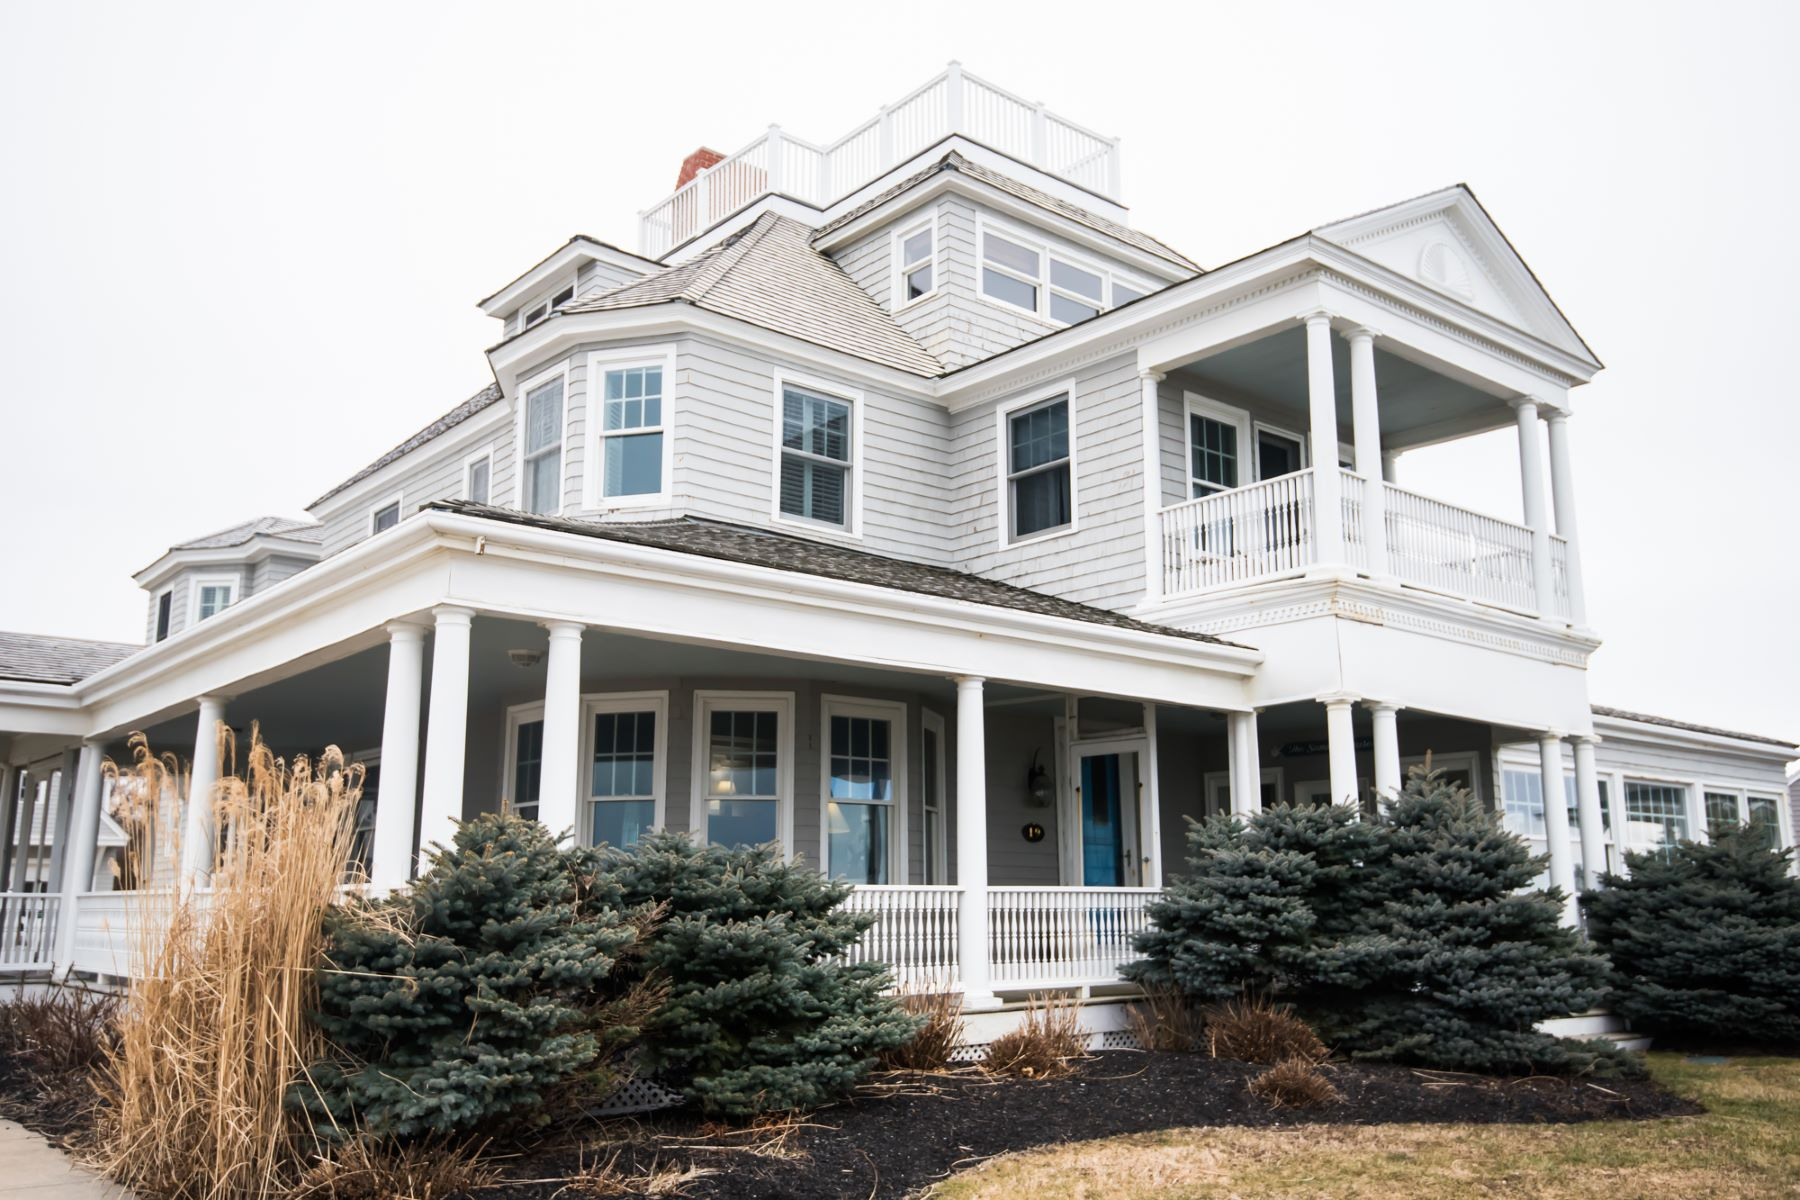 Single Family Home for Active at Minot Victorian 19 Glades Rd. Scituate, Massachusetts 02066 United States